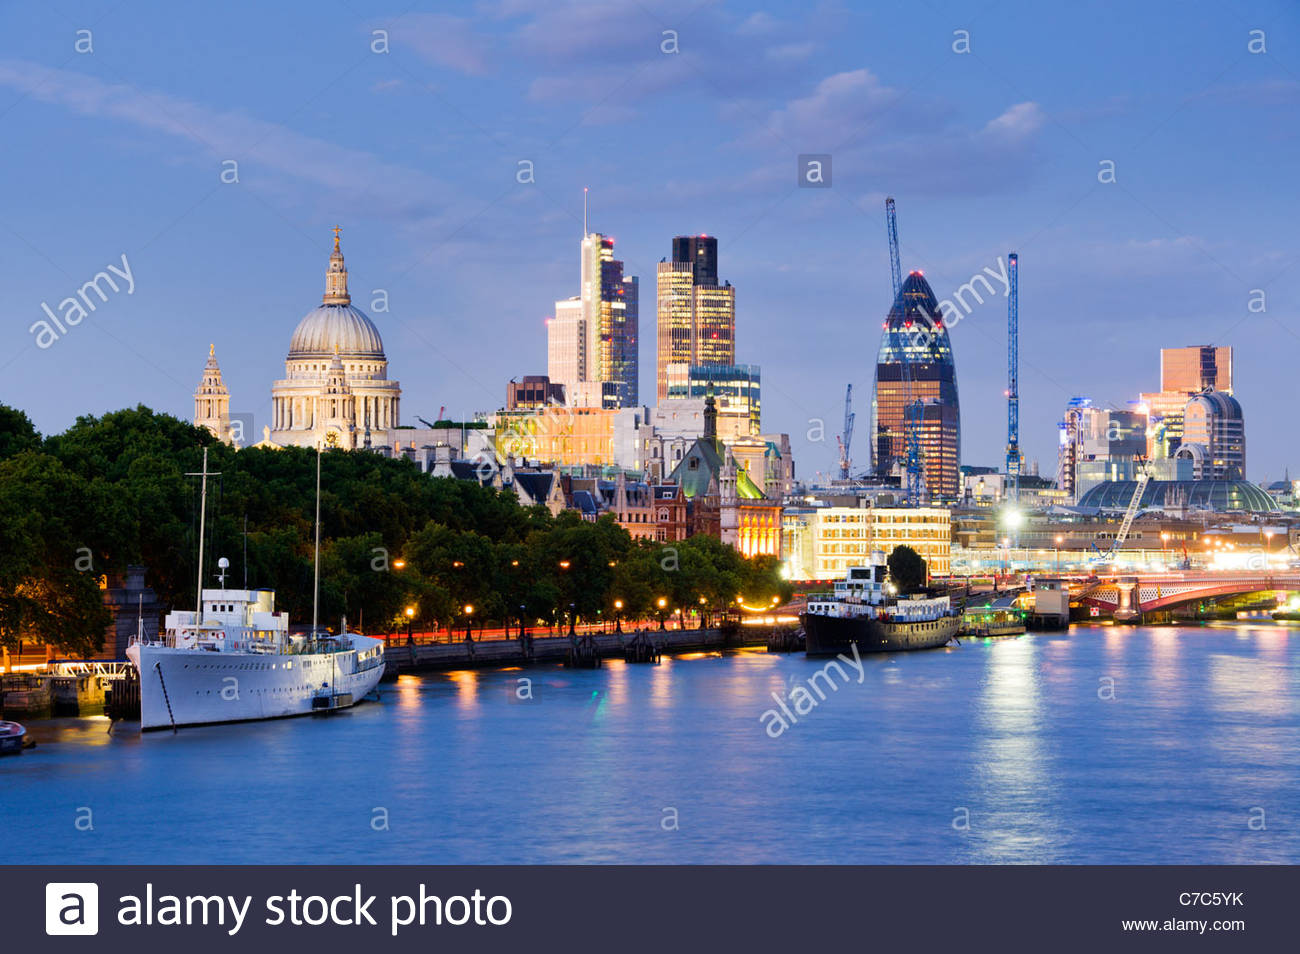 The City skyline from the river Thames, London. - Stock Image